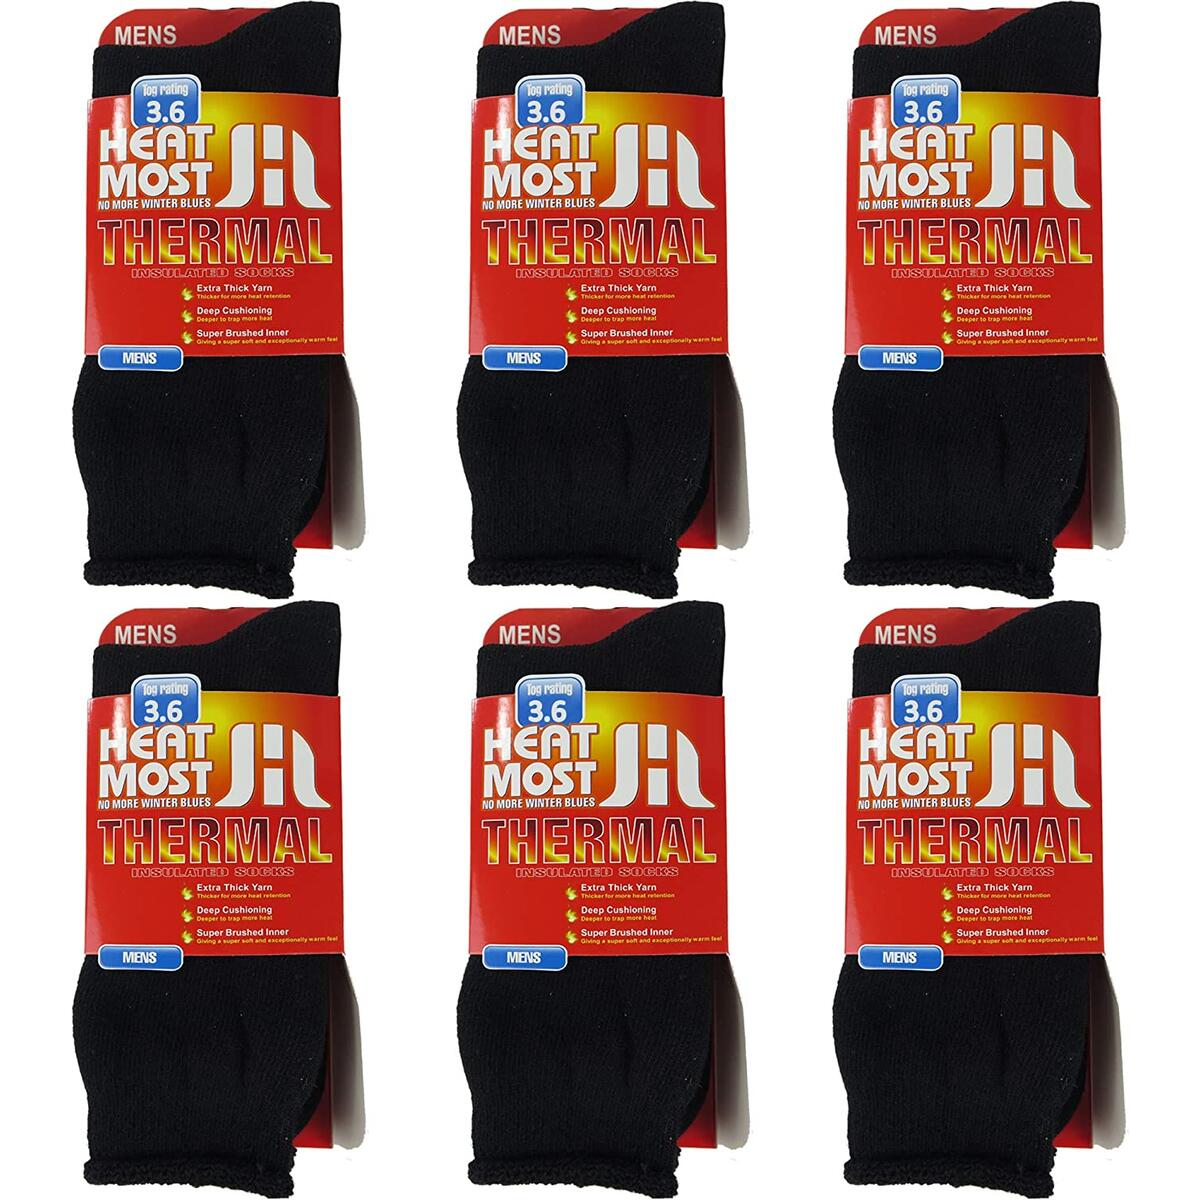 Debra Weitzner Thermal Socks For Men and Women Heated Winter Socks Insulated for Cold Weathers 6 Pack  black